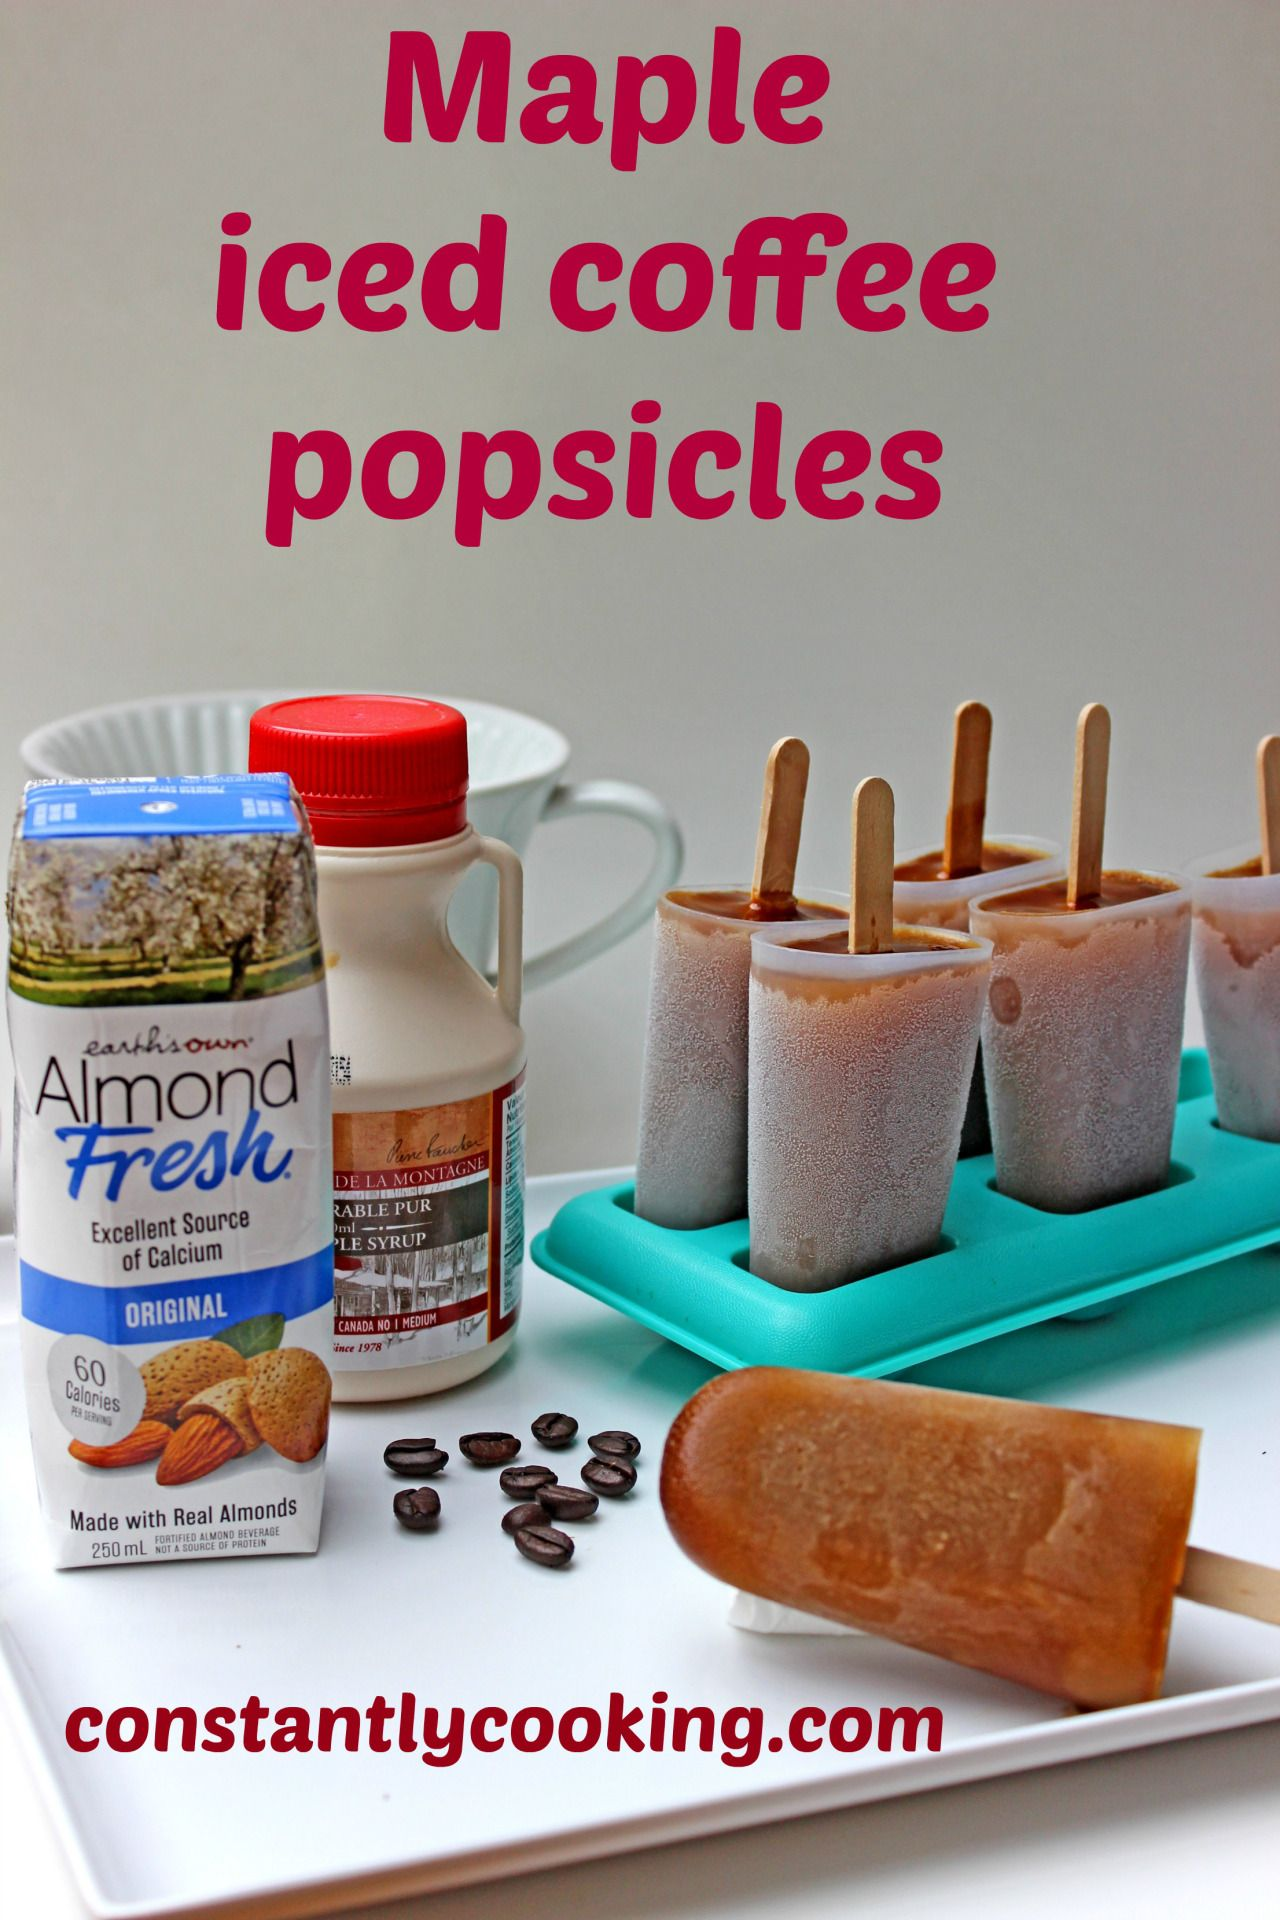 Maple iced coffee popsicles Coffee popsicles, Iced